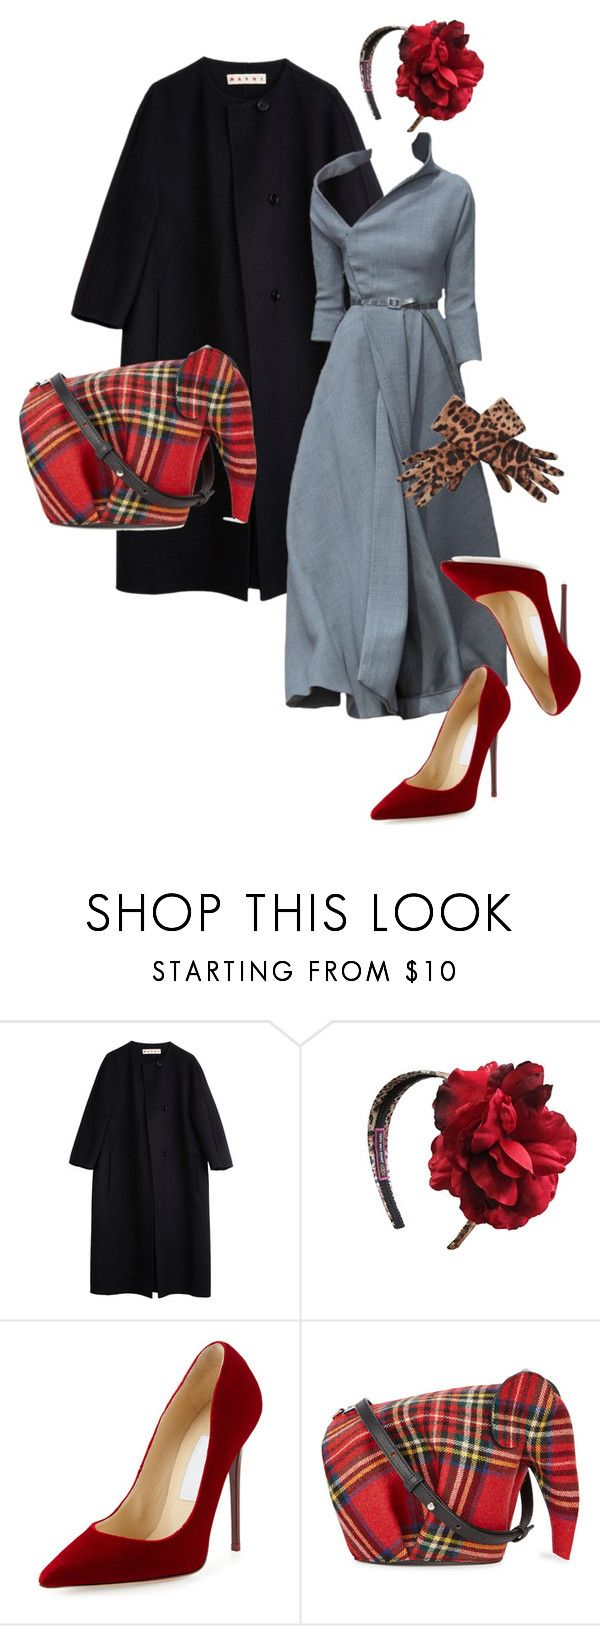 """""""play and stay on couture!!!!"""" by gonal ❤ liked on Polyvore featuring Marni, Christian Dior, Jamie Rae, Jimmy Choo, Loewe and Dolce&Gabbana"""